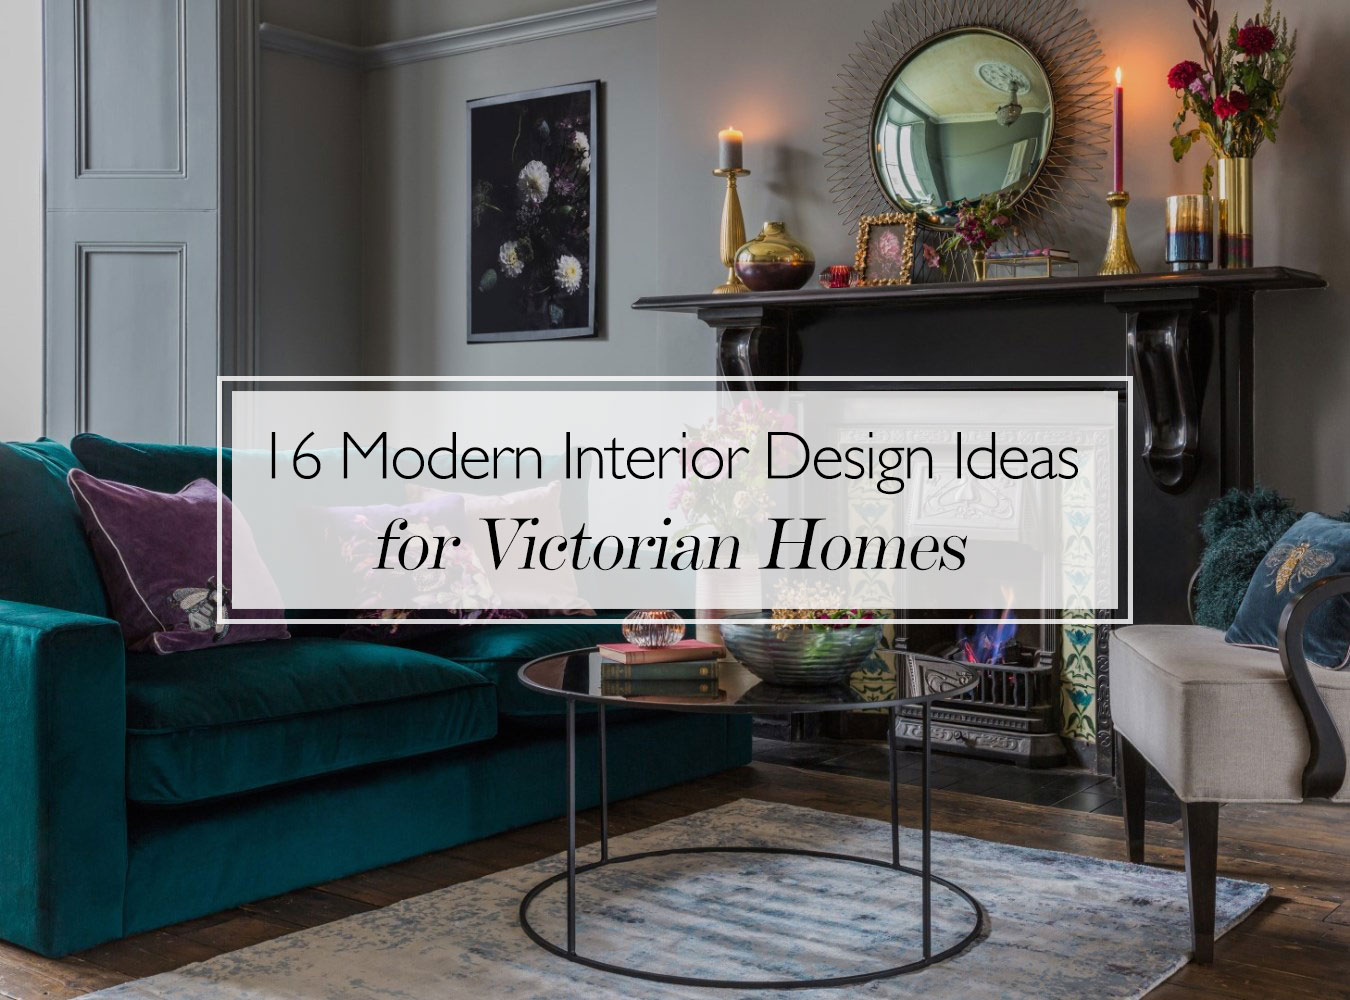 16 Ideas for Modernising & Updating Your Victorian Home Decor